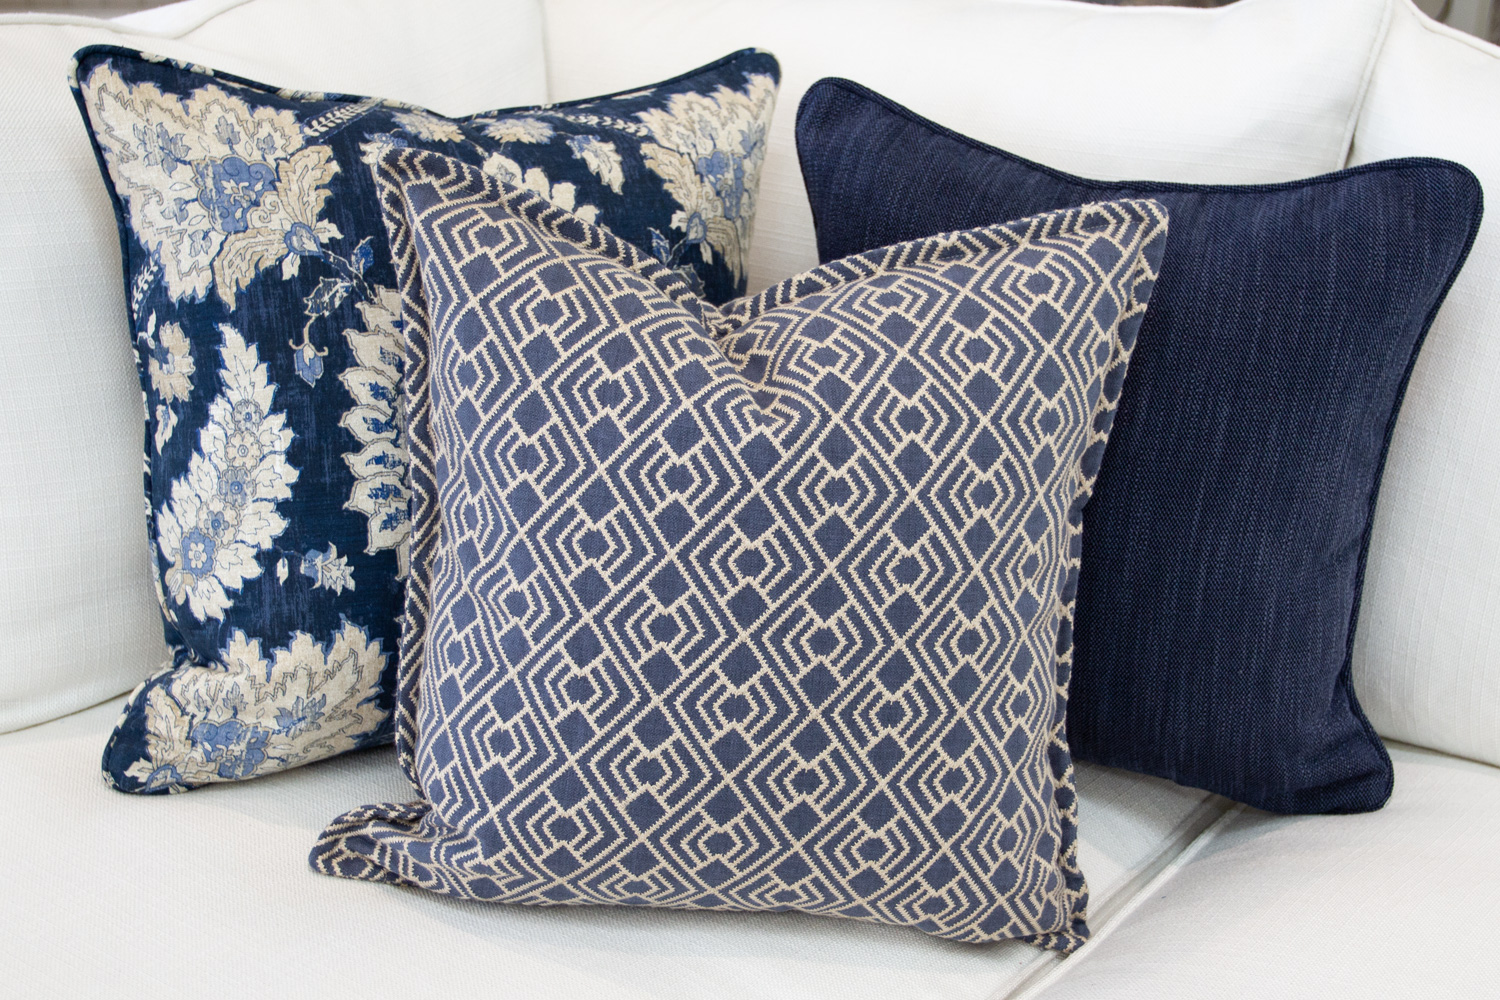 Chameleon Style 12 Days Of Pillows 2018 Indigo Evening Day 9 Chameleon Style